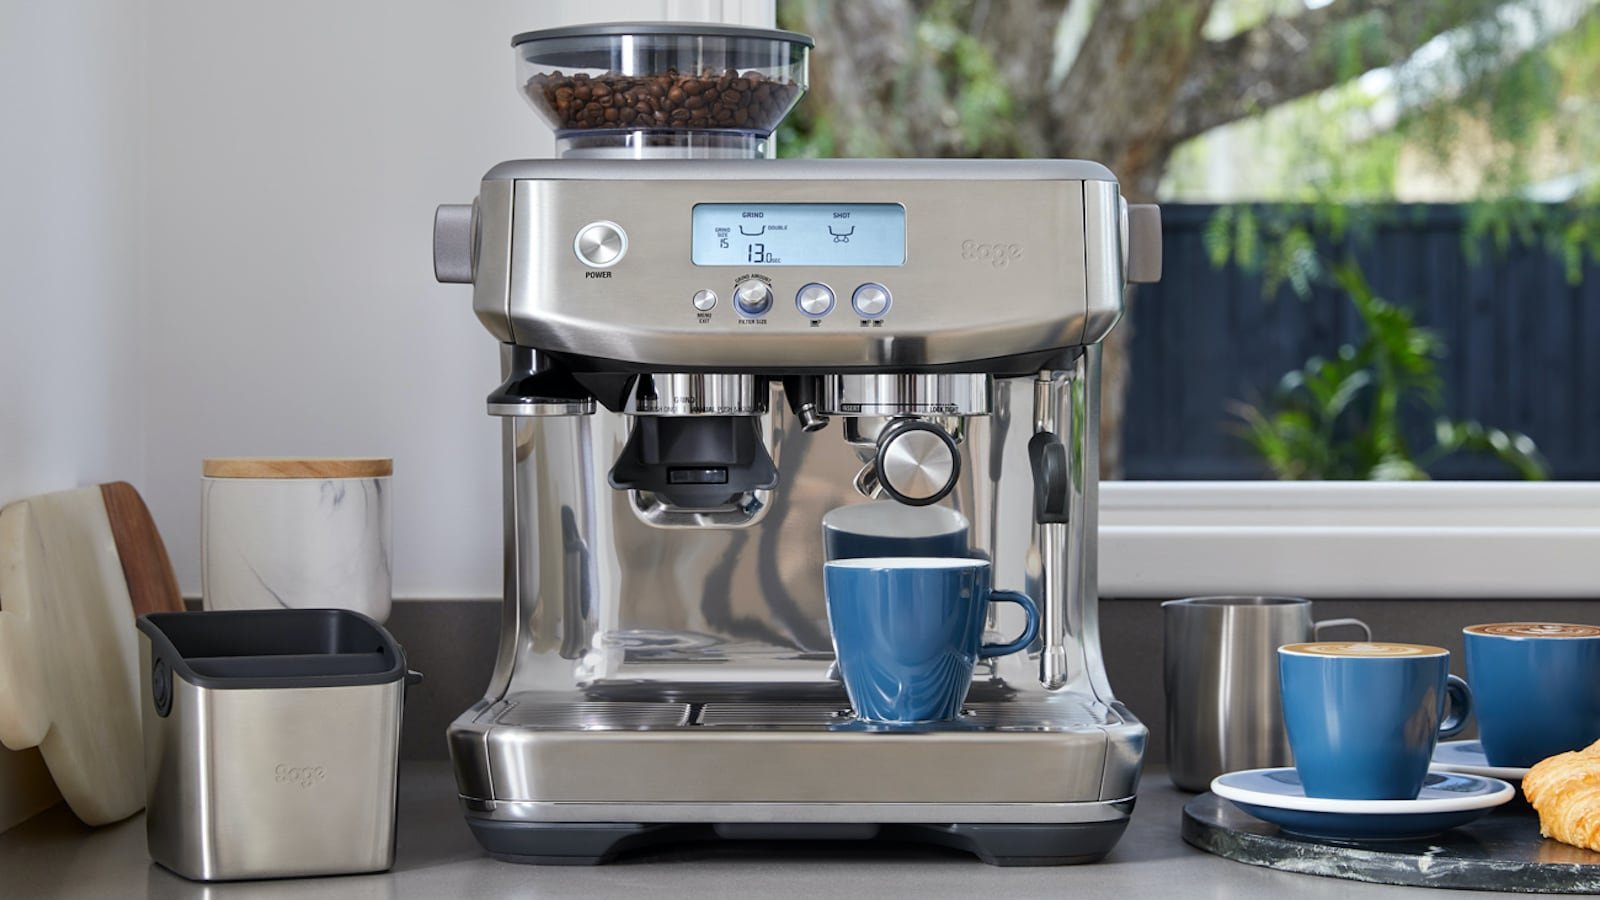 Breville the Barista Pro Espresso Machine gives you barista-quality drinks at home